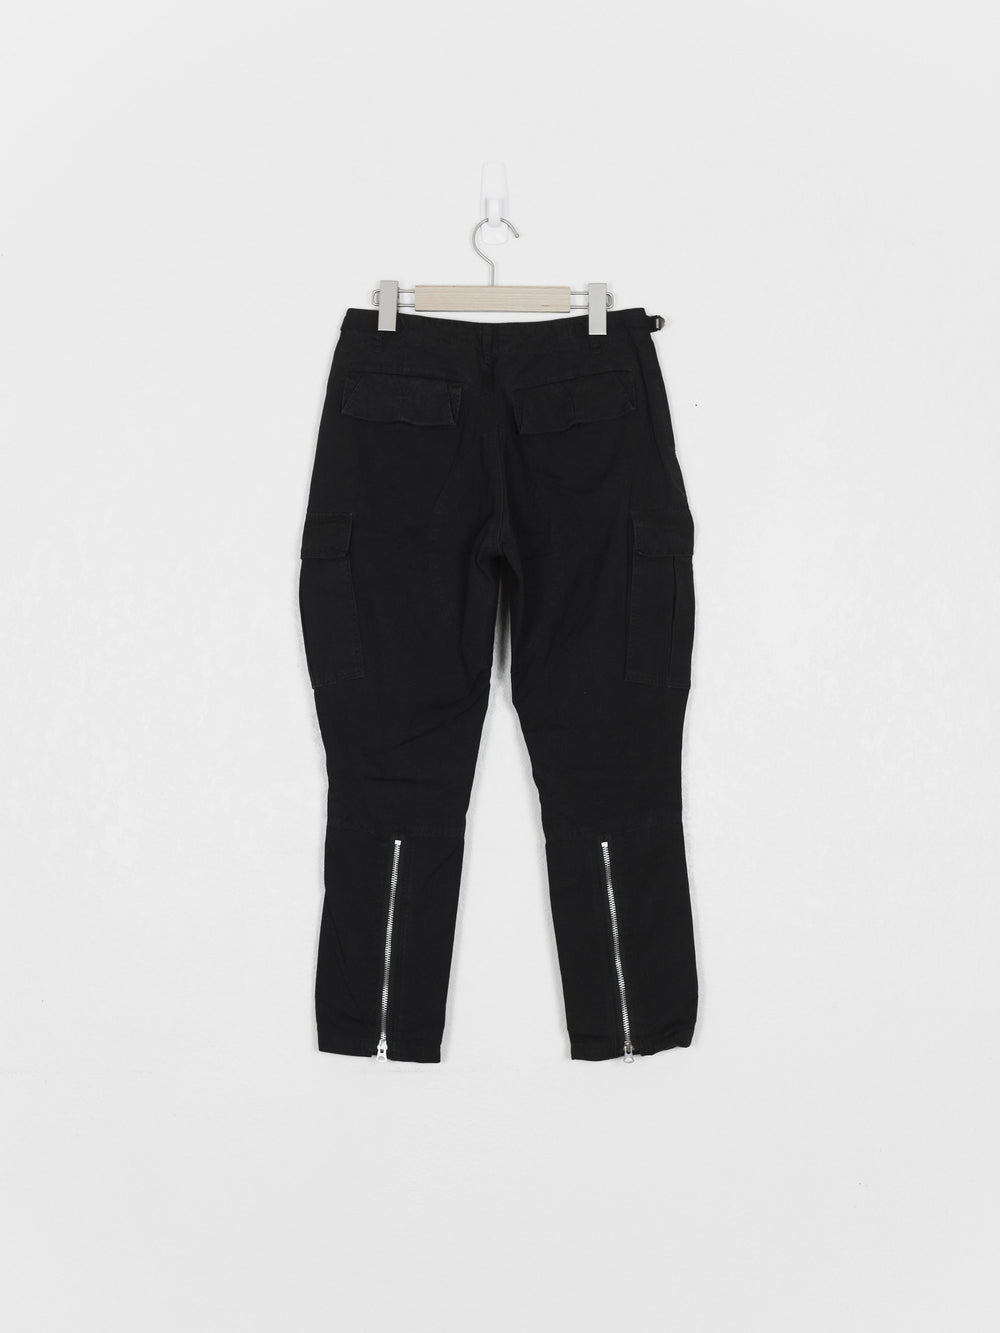 Undercover AW10 Cropped Jodhpur Backzip Cargo Pants